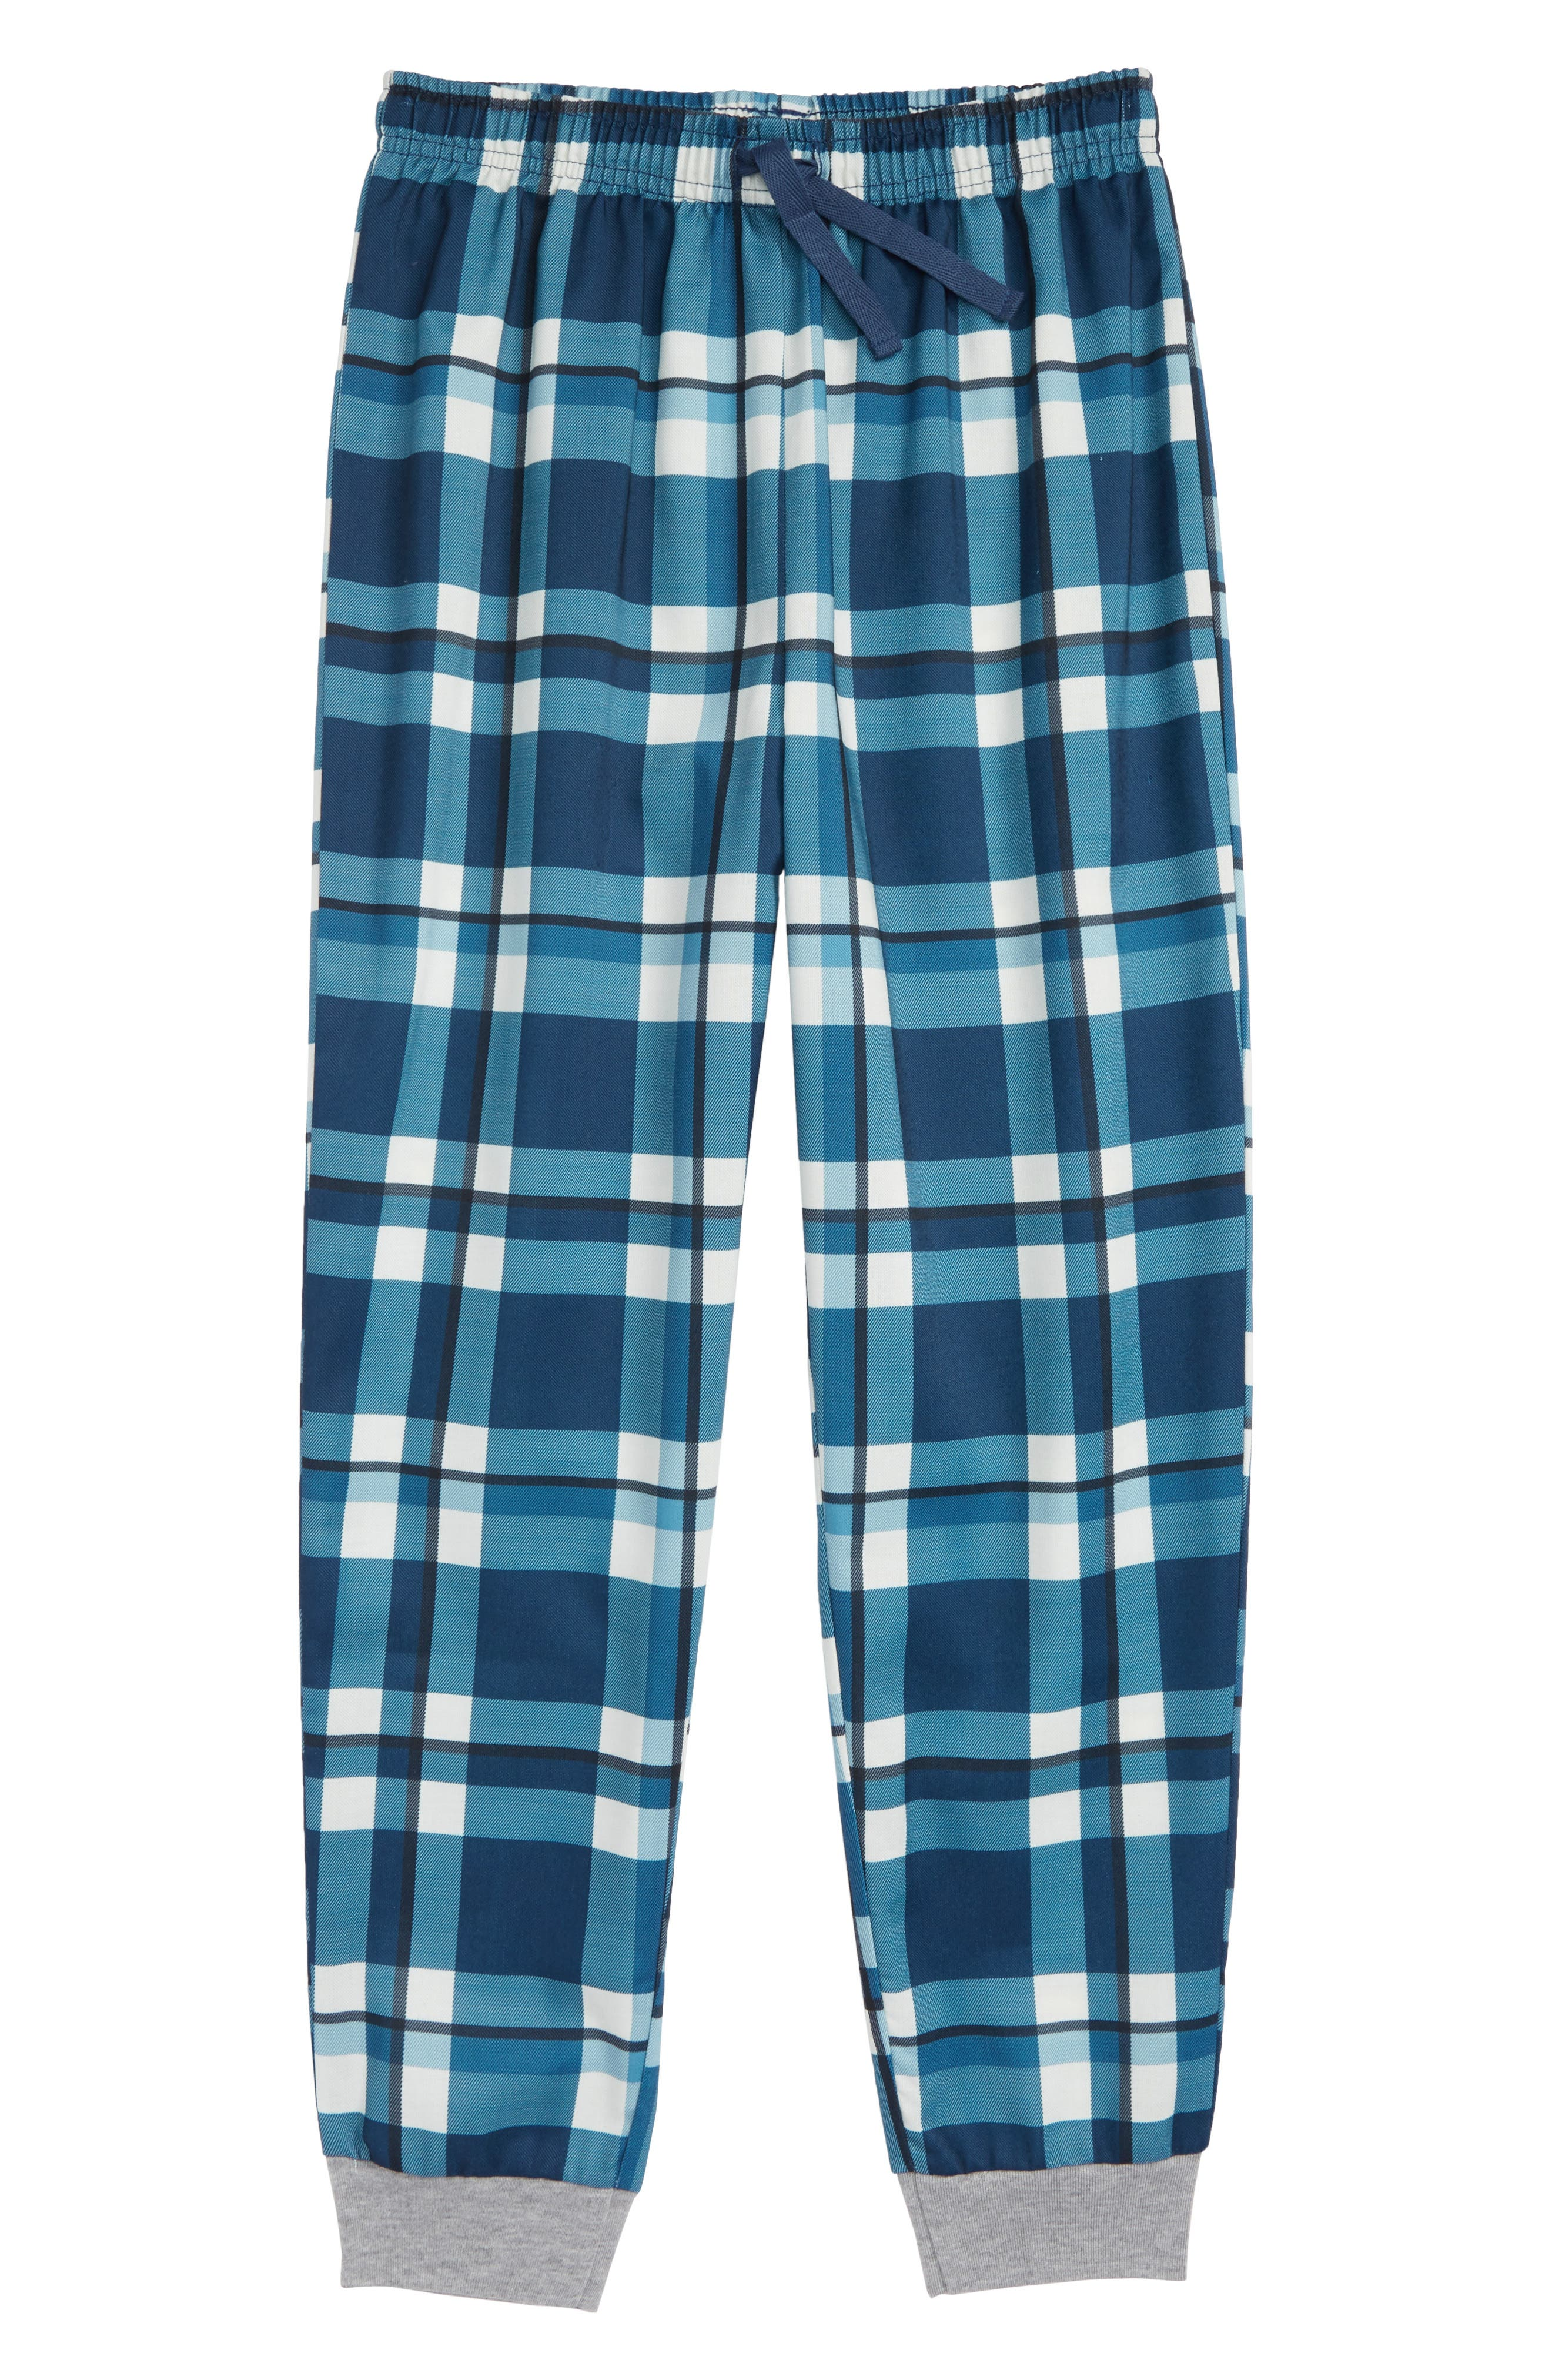 TUCKER + TATE,                             Flannel Jogger Pants,                             Main thumbnail 1, color,                             BLUE WING- IVORY PLAID